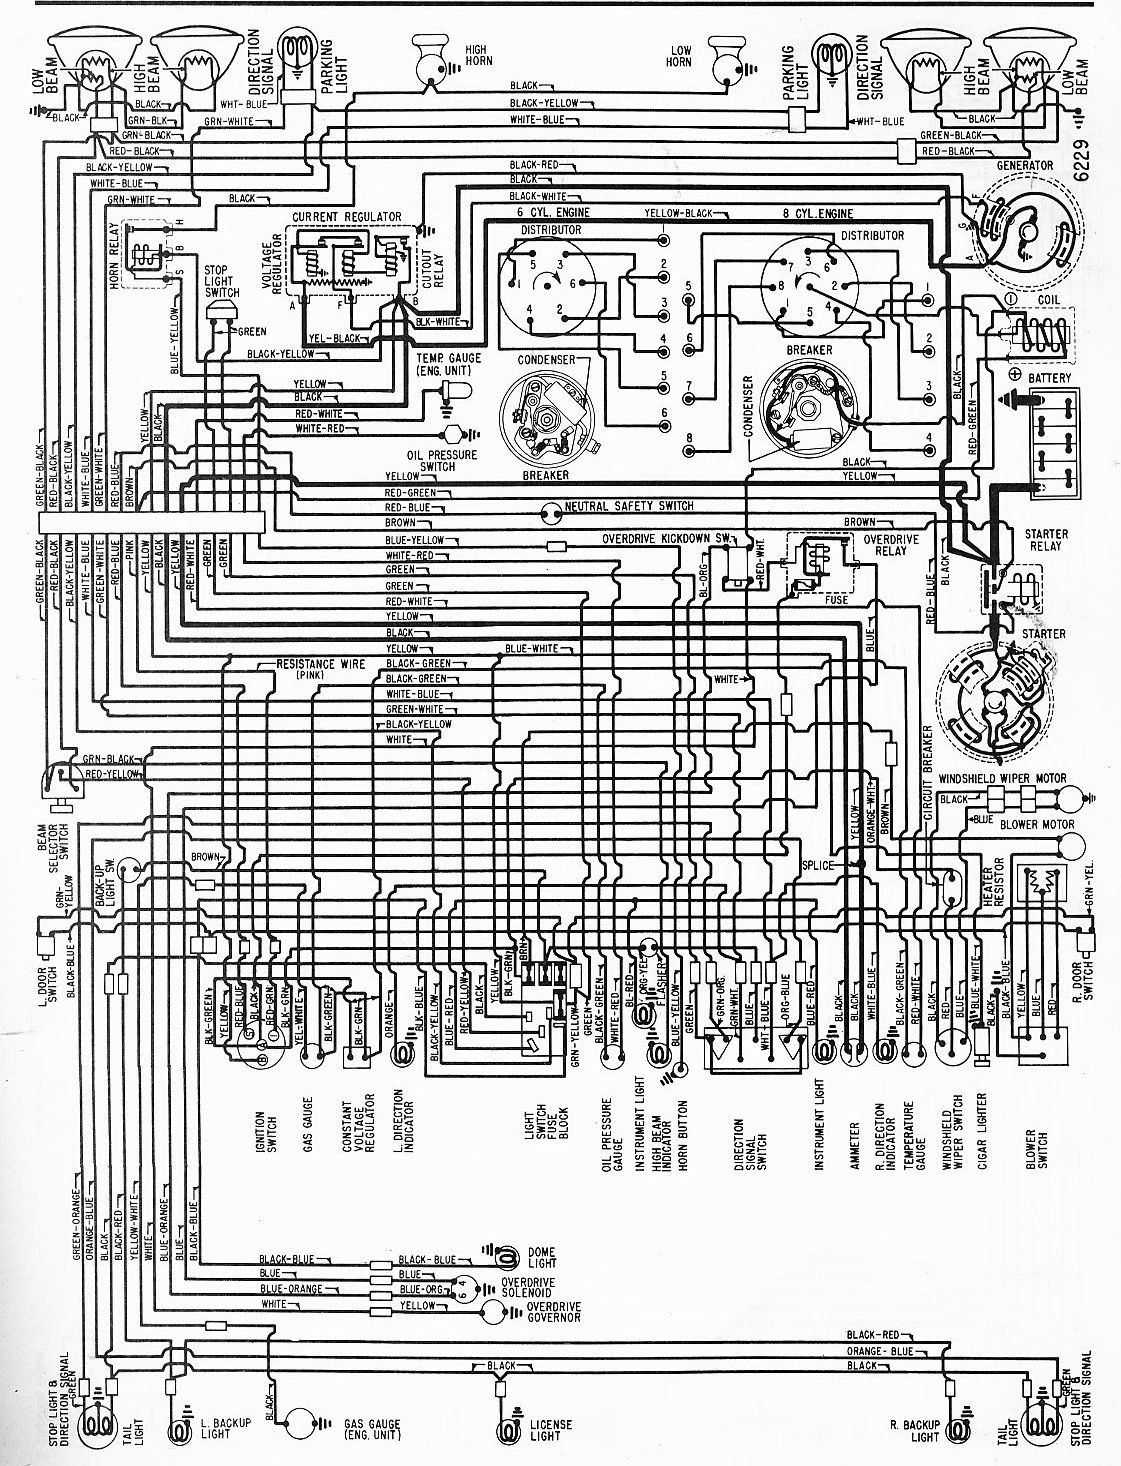 1970 chevy c10 fuse box diagram wiring diagram portal with regard to 1972 chevy truck wiring diagram [ 1121 x 1466 Pixel ]